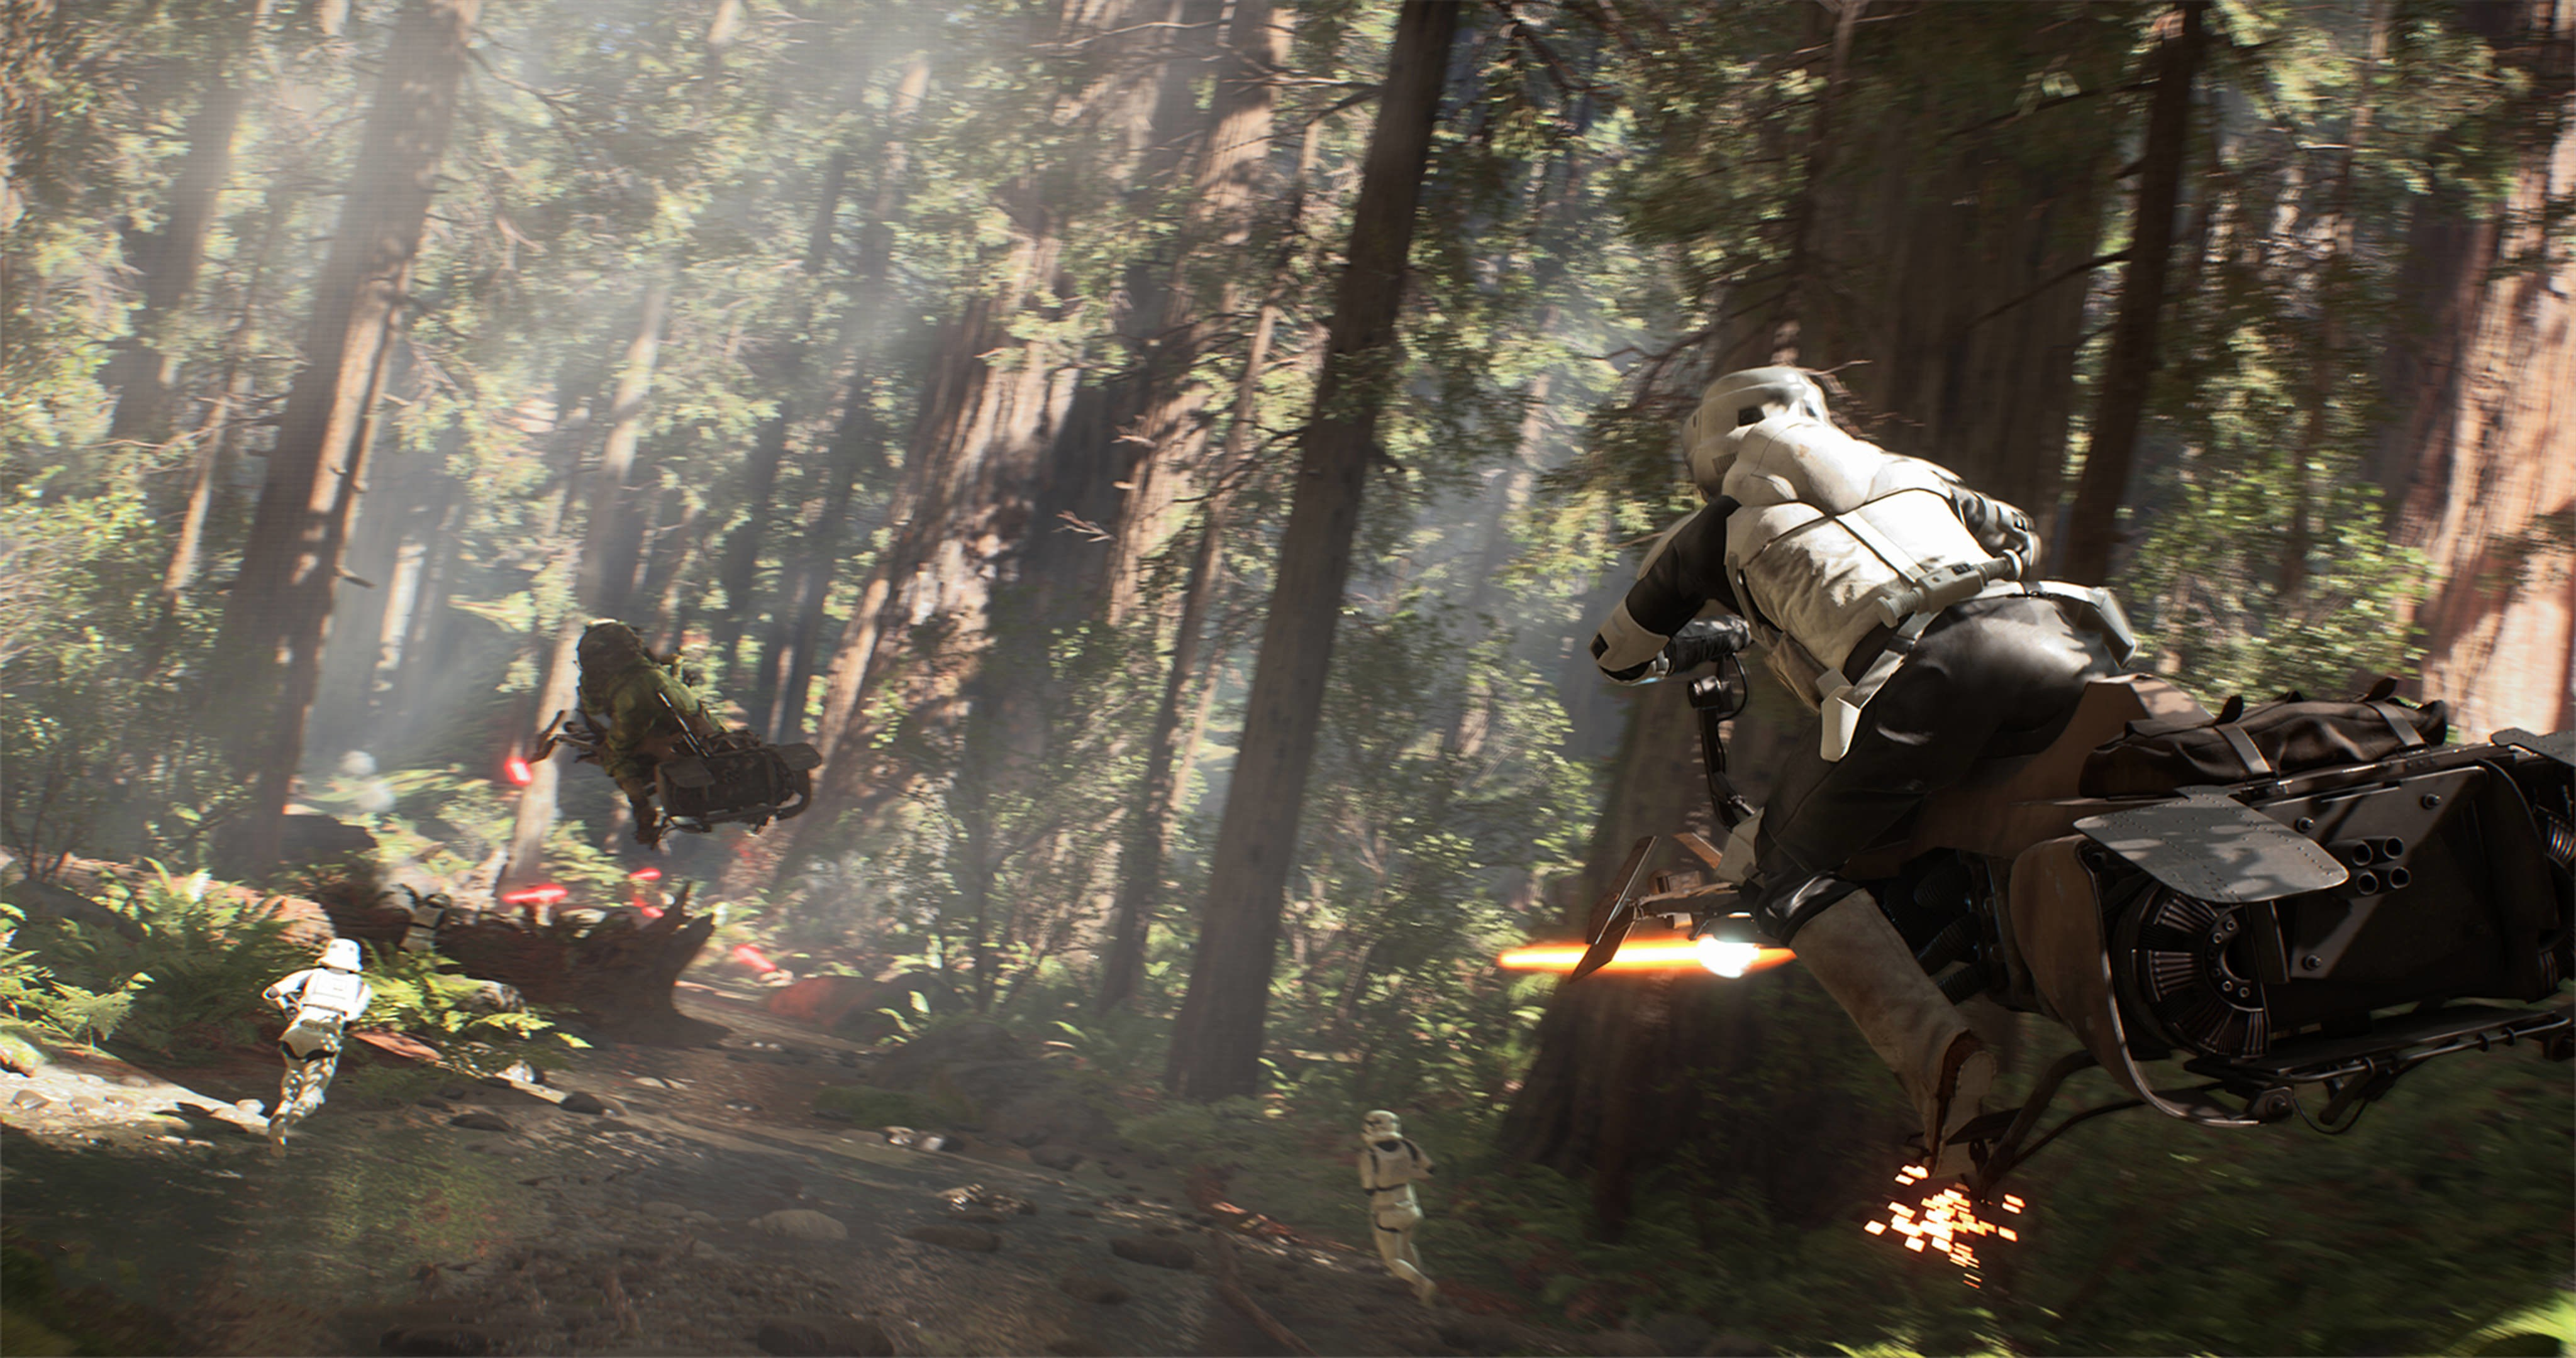 Star Wars Battlefront Forest Chase 4k Ultra Hd Wallpaper High Quality Walls